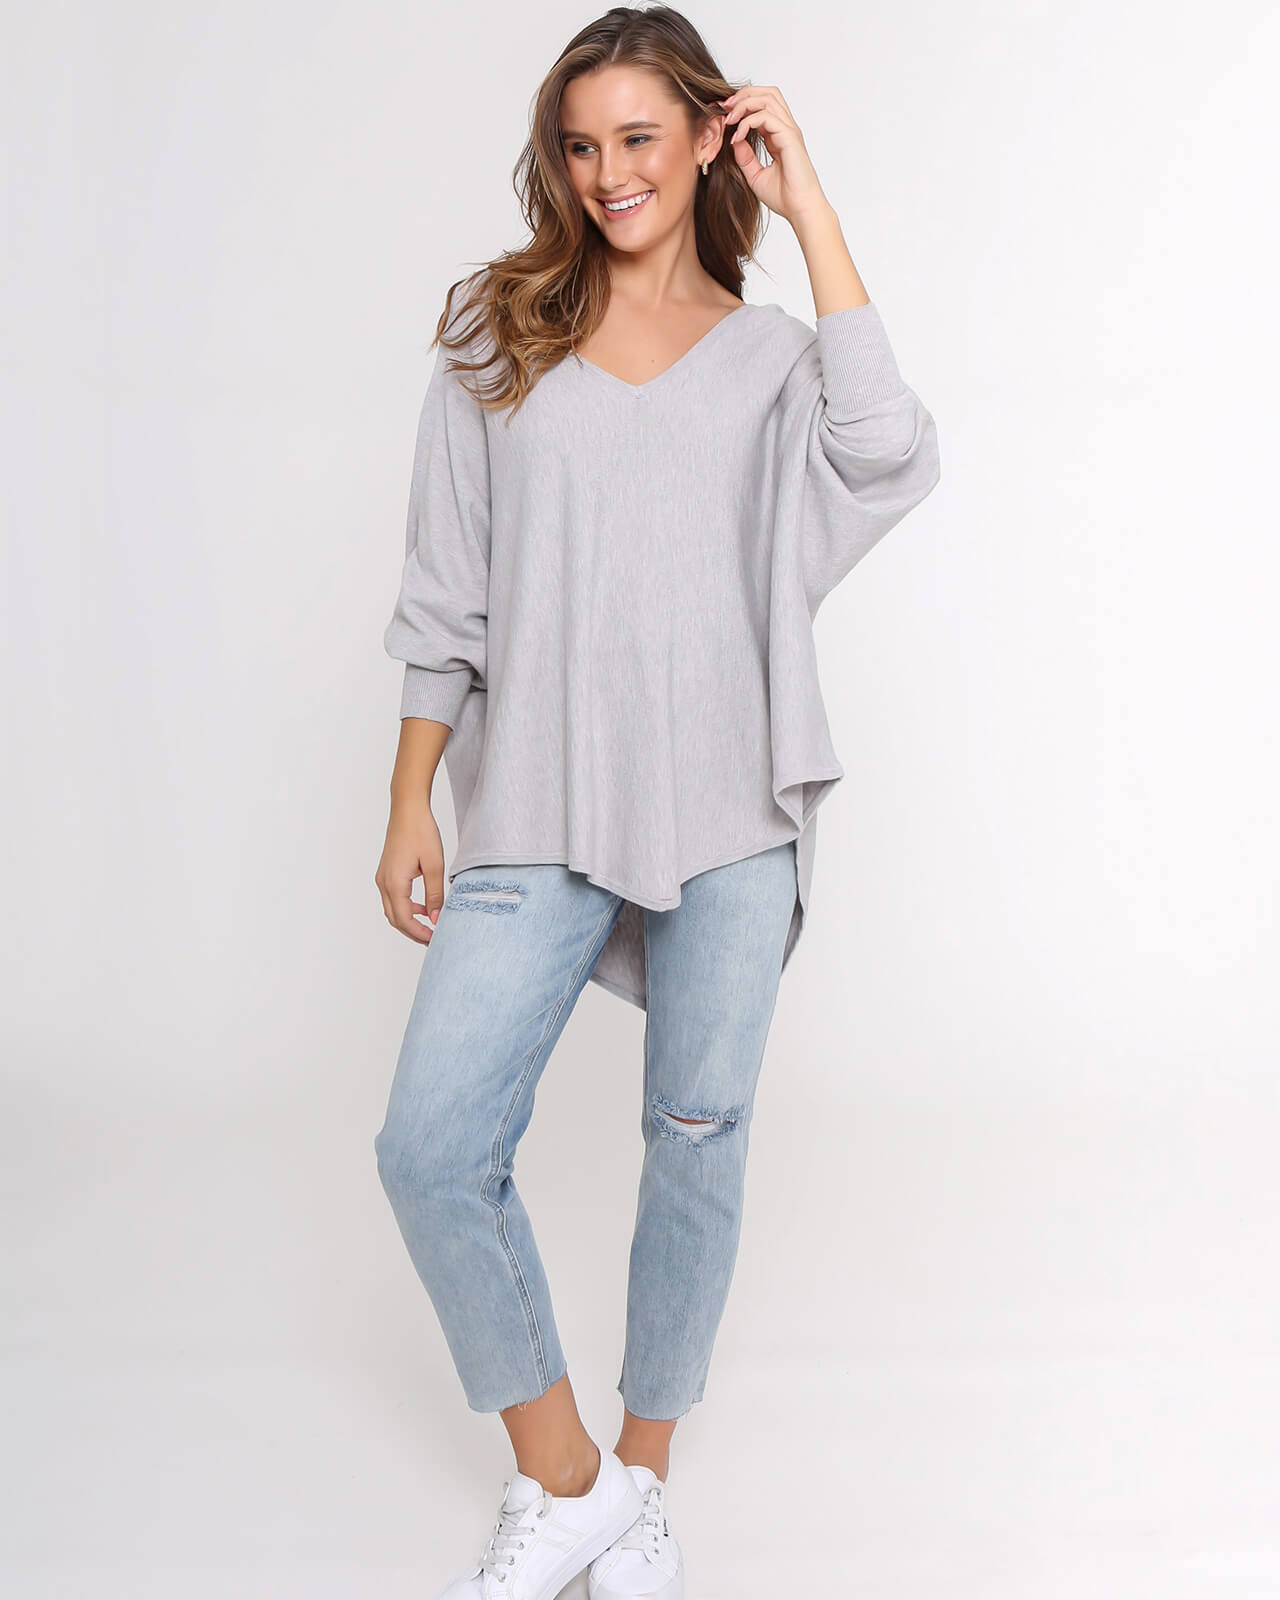 Zali Knit Top - Grey